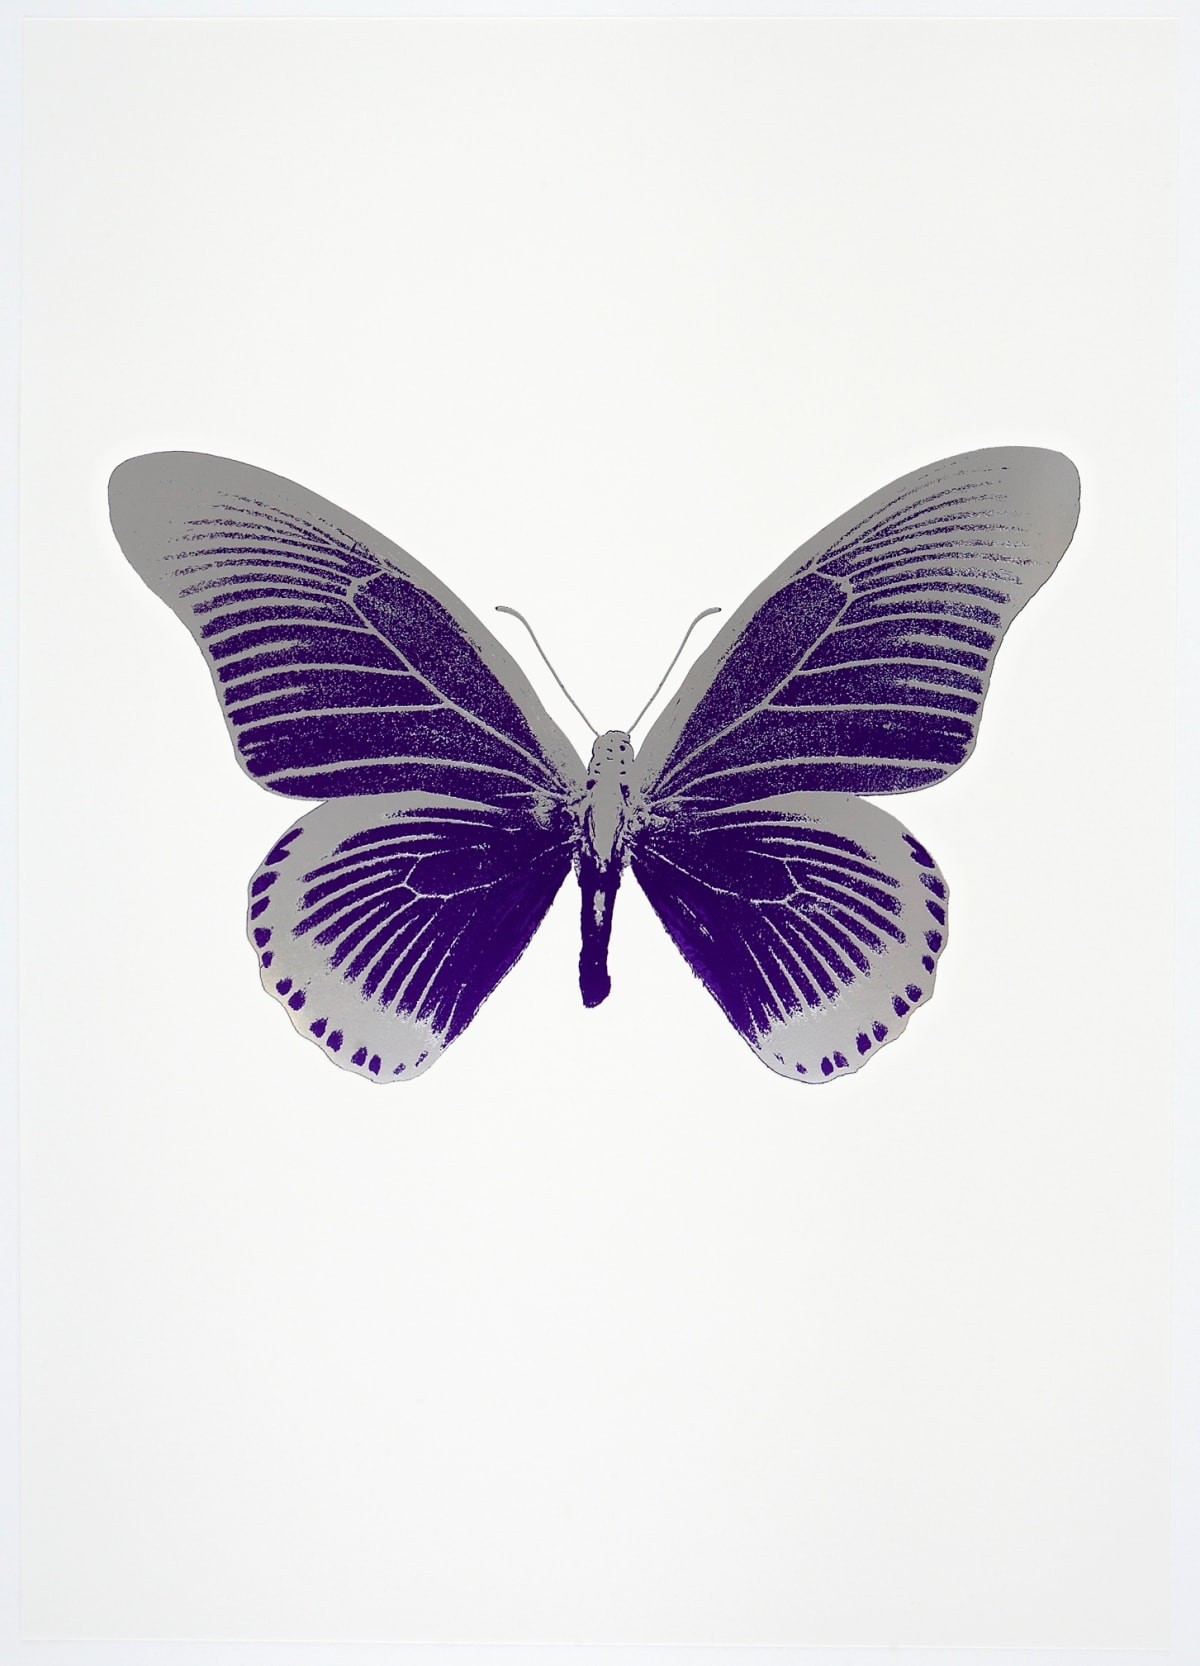 Damien Hirst The Souls IV - Imperial Purple/Silver Gloss Damien Hirst butterfly foil print for sale Damien Hirst print for sale , 2010 2 colour foil block on 300gsm Arches 88 archival paper. Signed and numbered. Published by Paul Stolper and Other Criteria 72 x 51cm OC8000 / 1418-23 Edition of 15